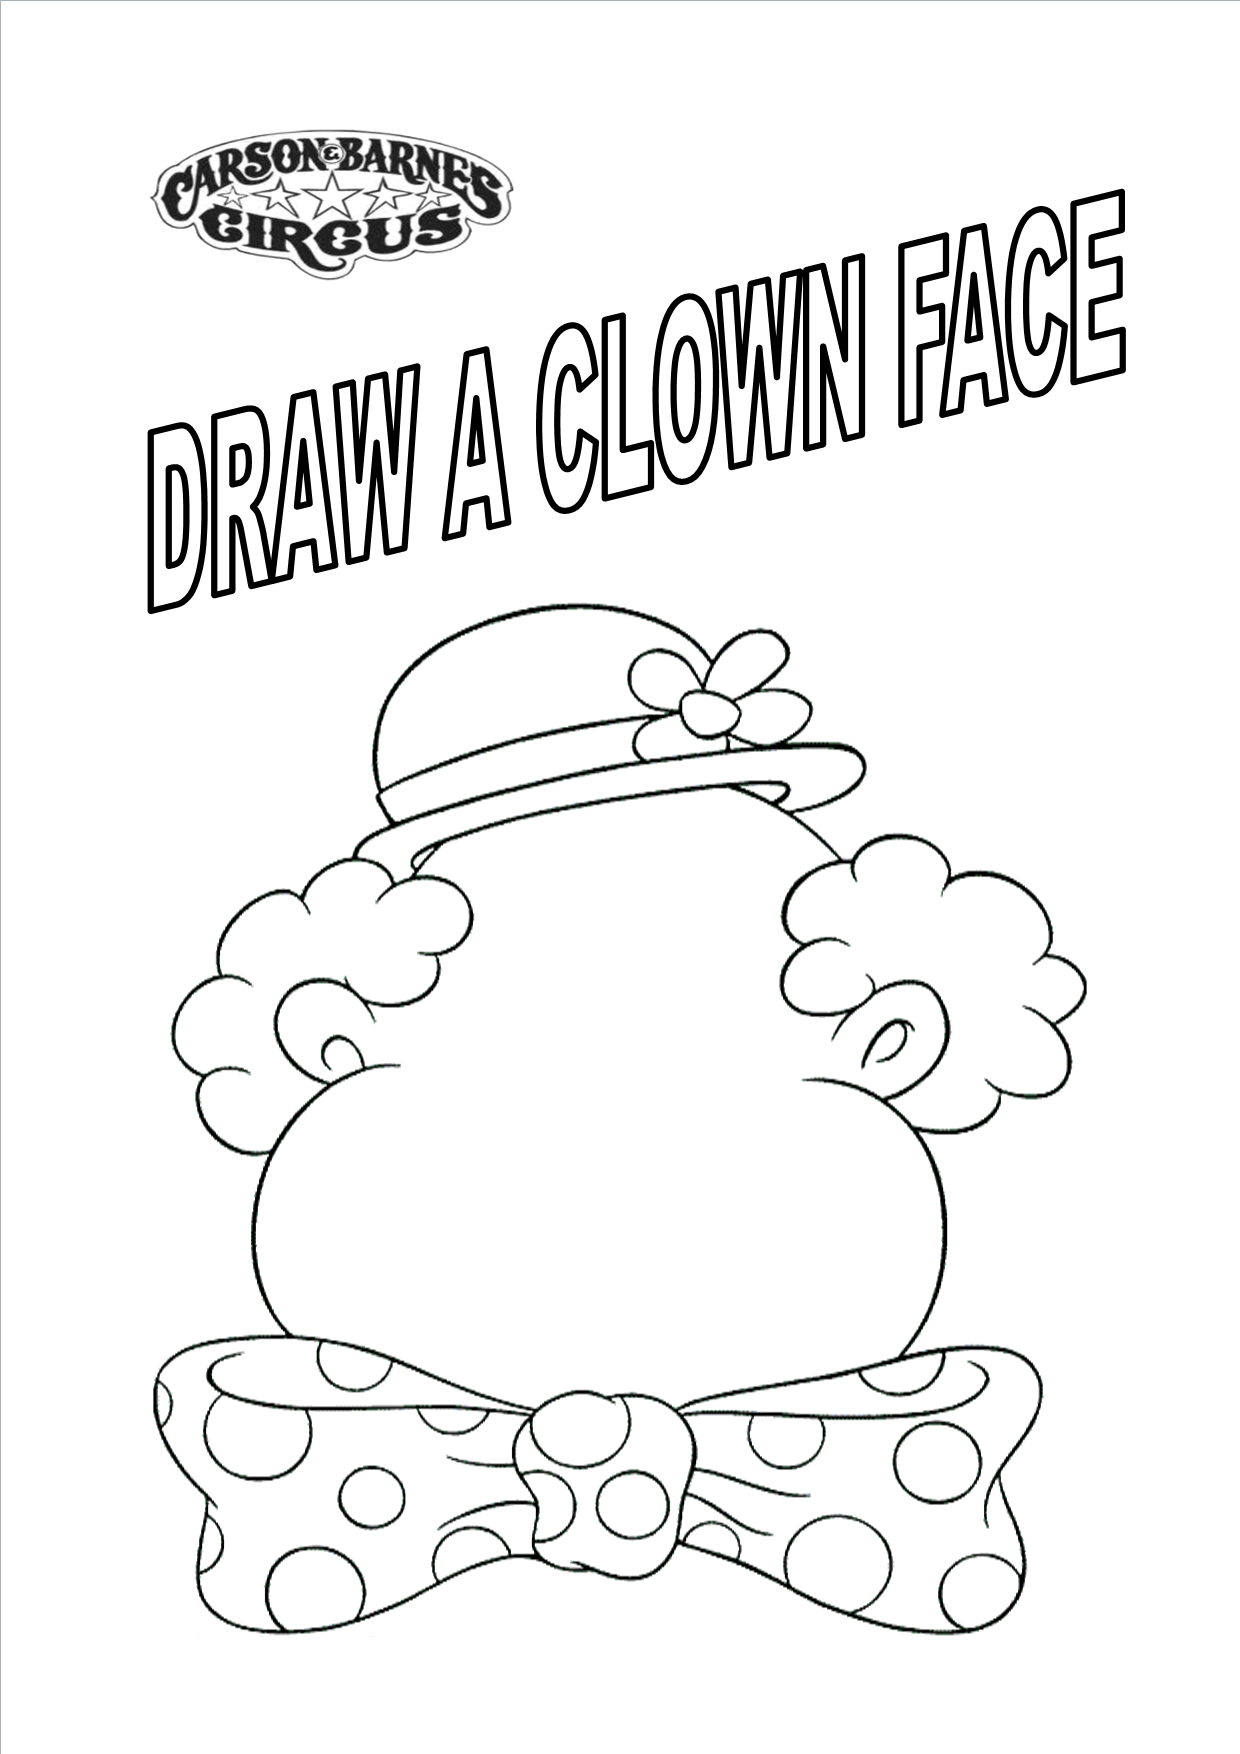 Coloring page: draw a clown face | School | Pinterest | Clown faces ...